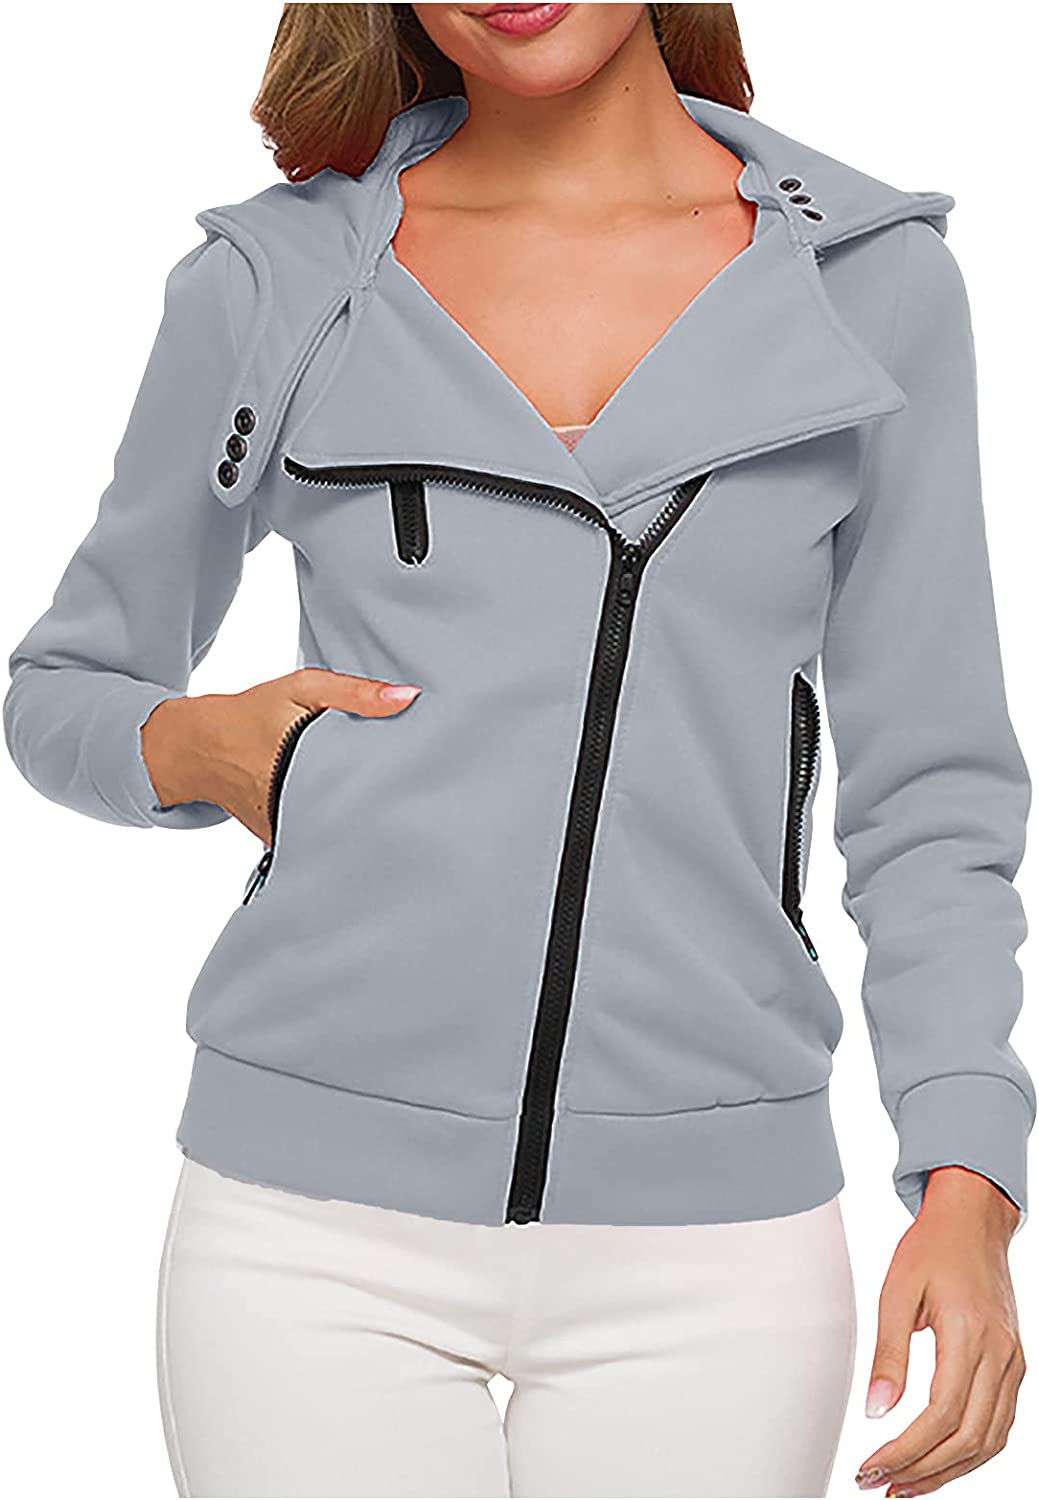 Casual Girls Jacket Slim Trench Coats For Women Cute Hoodies For Women With Pocket